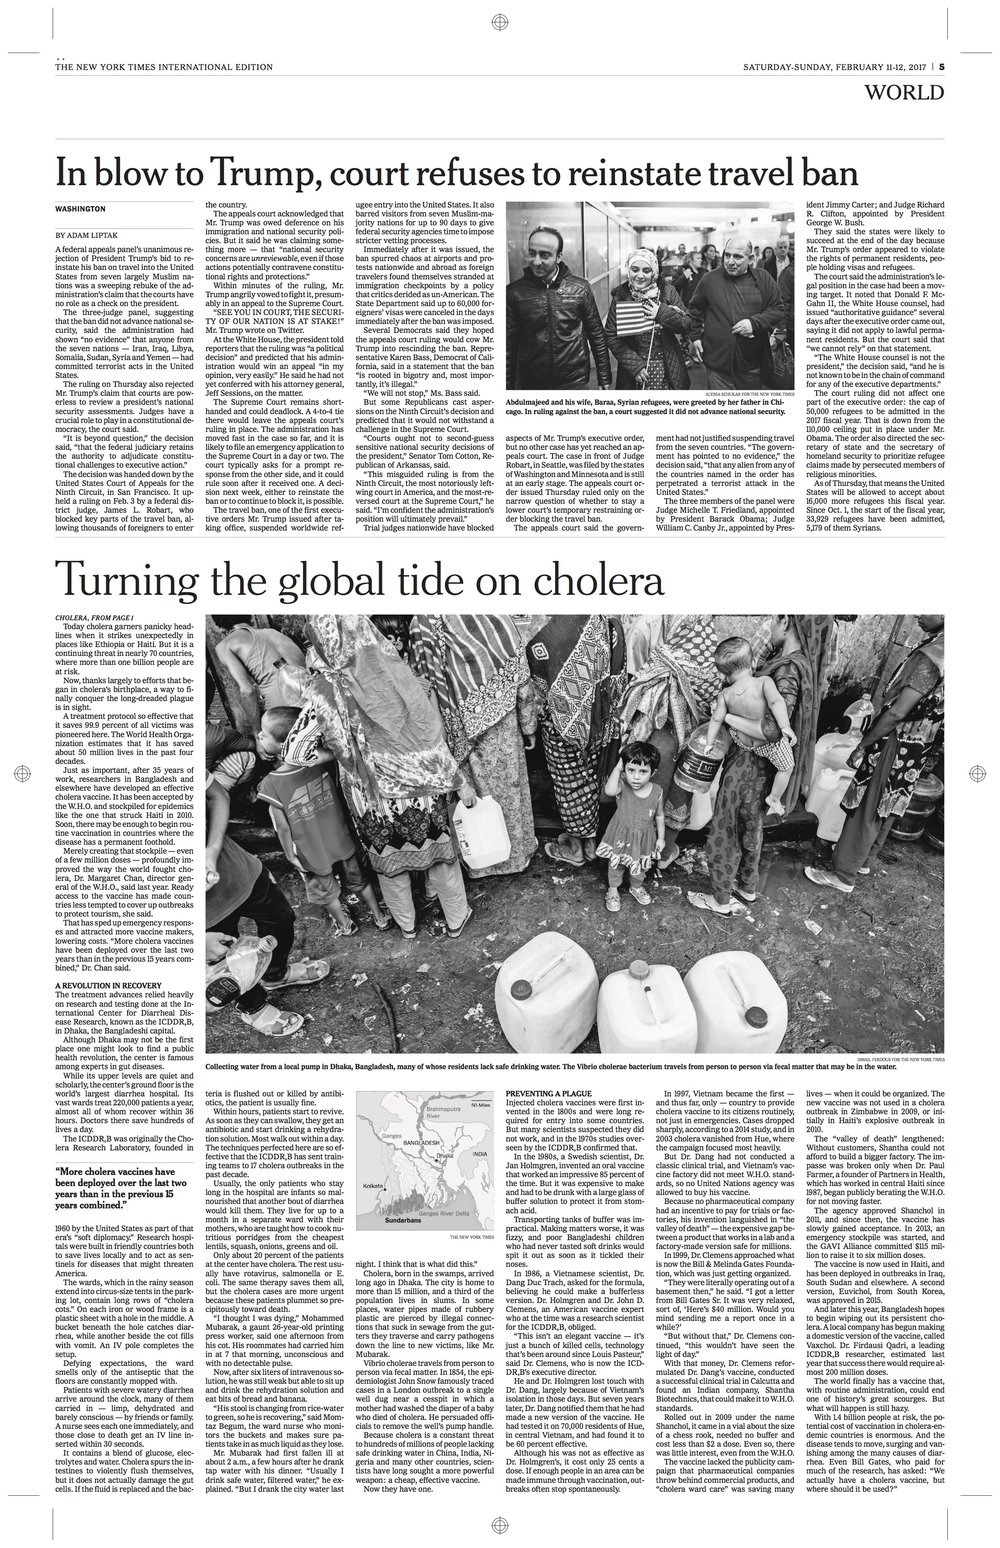 The New York Times Science-Cholera-5